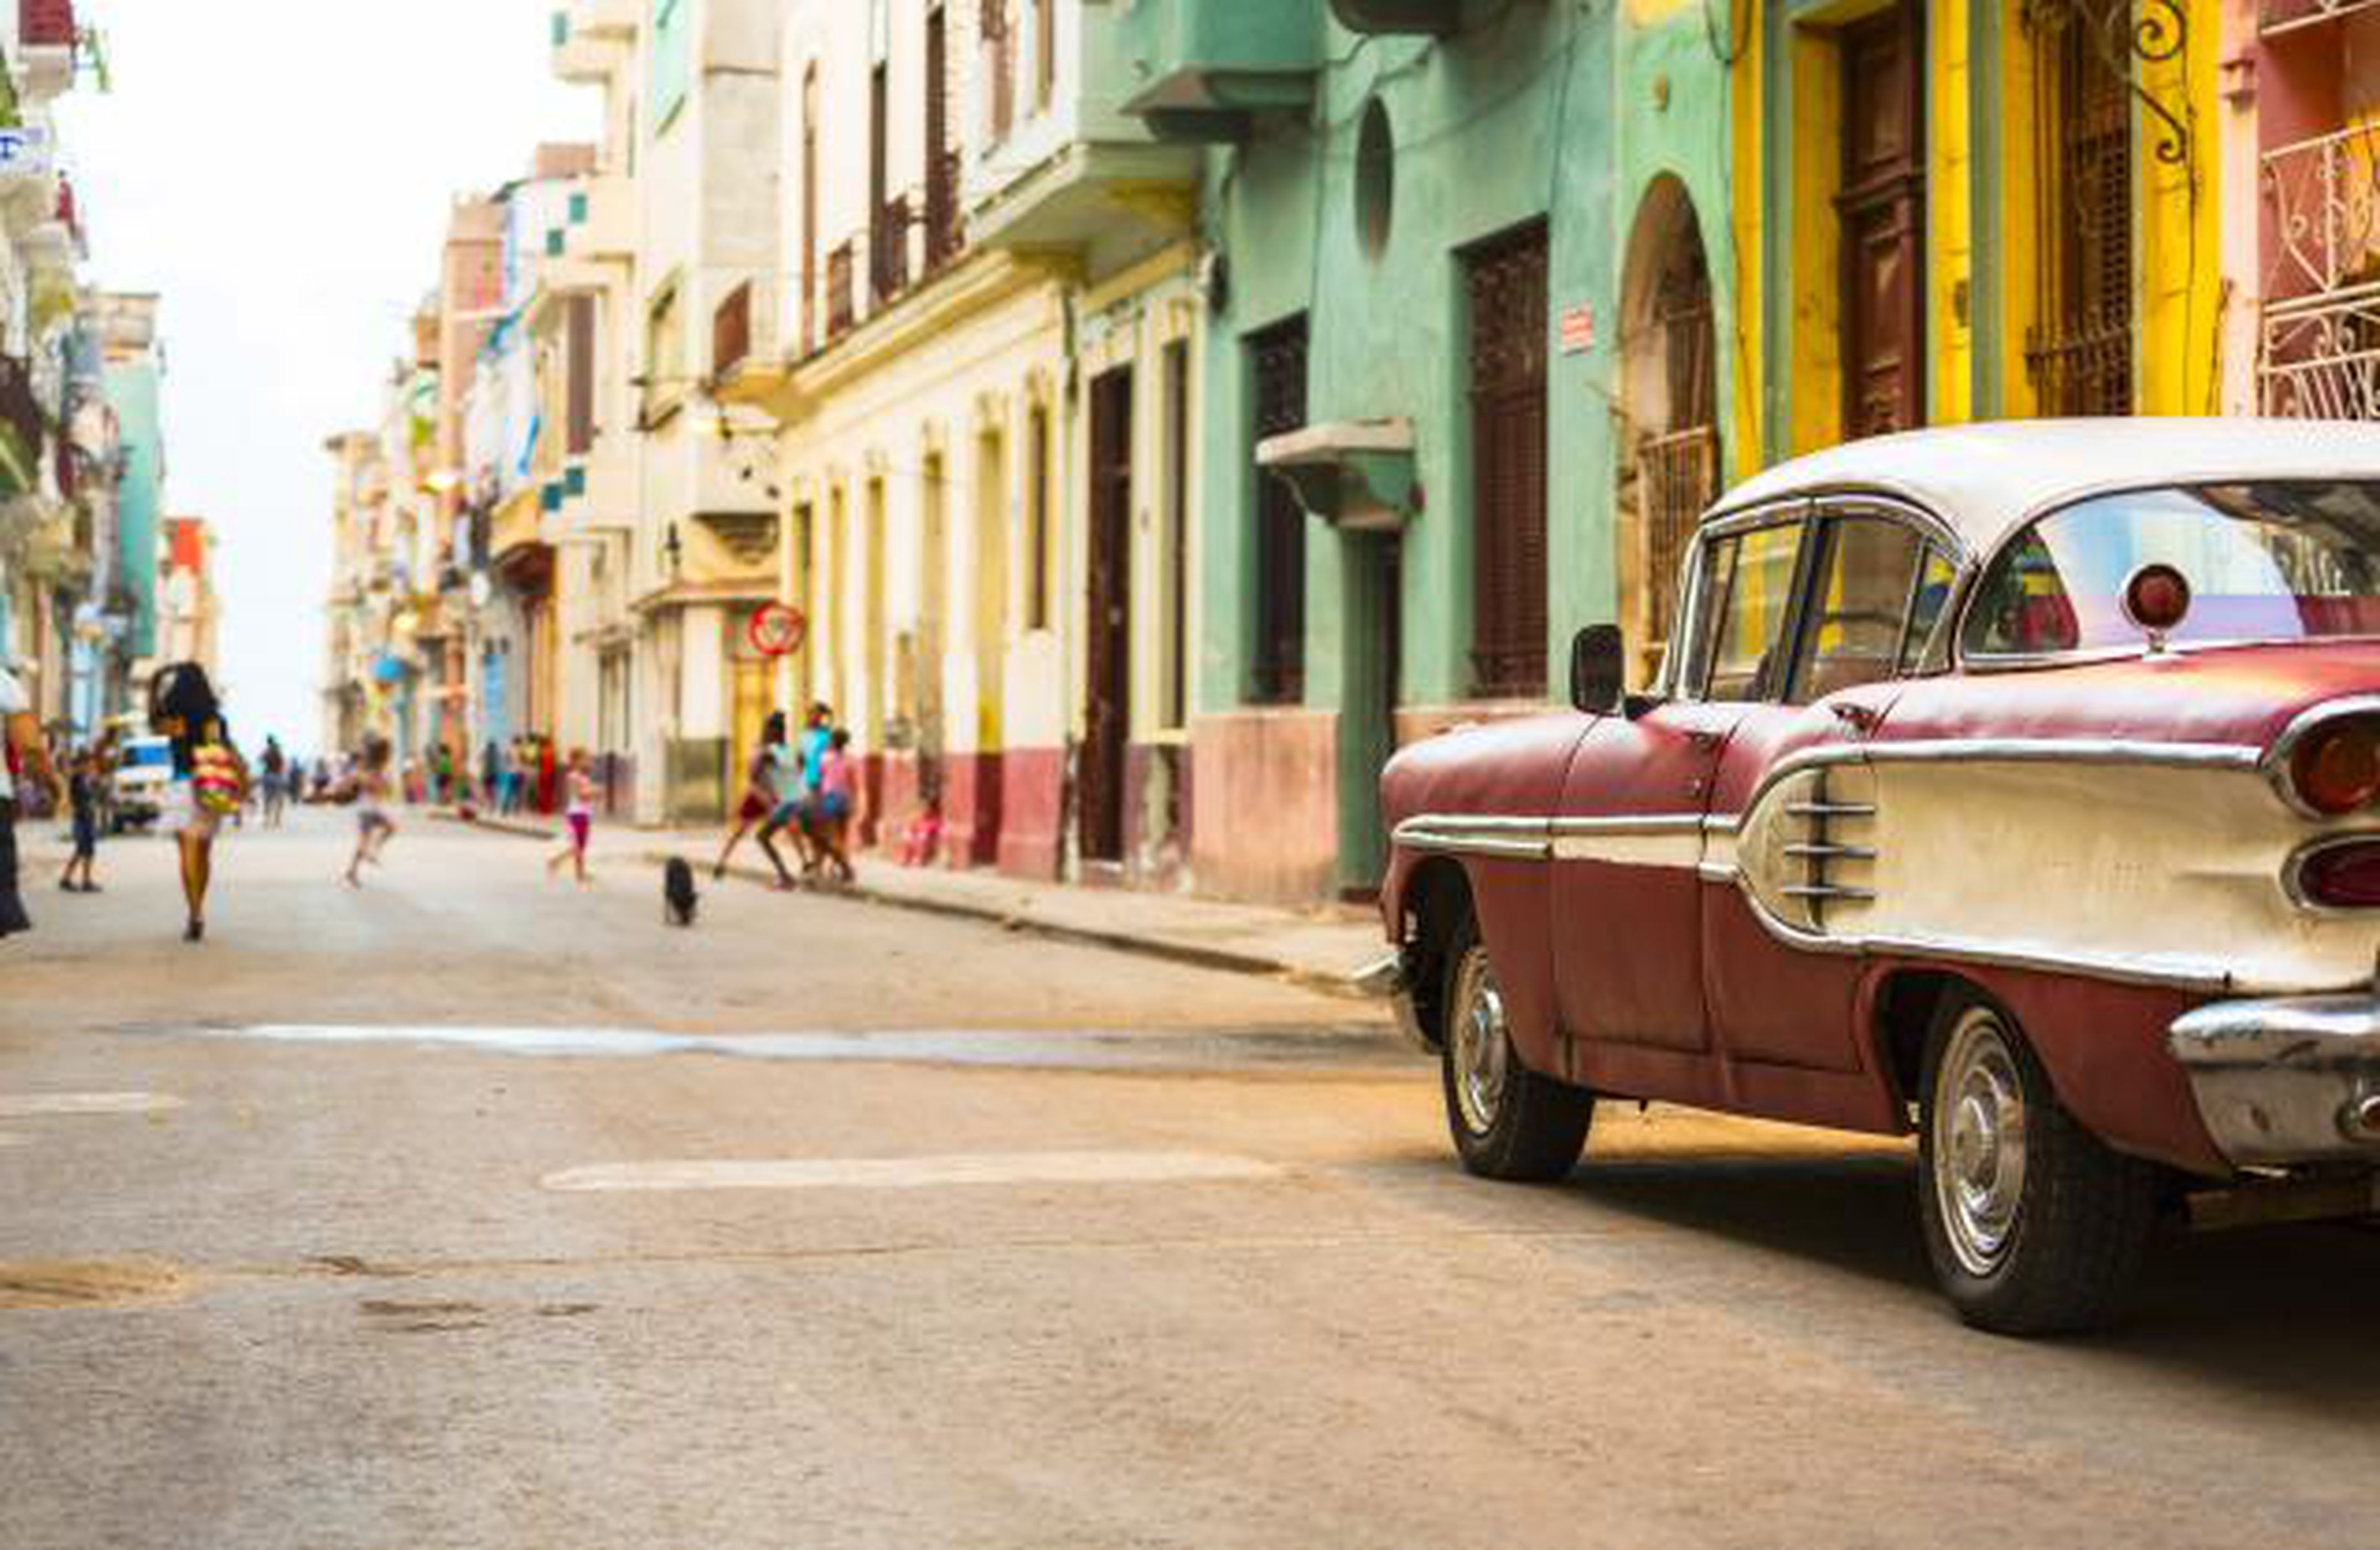 Can United States Citizens Travel to Cuba?